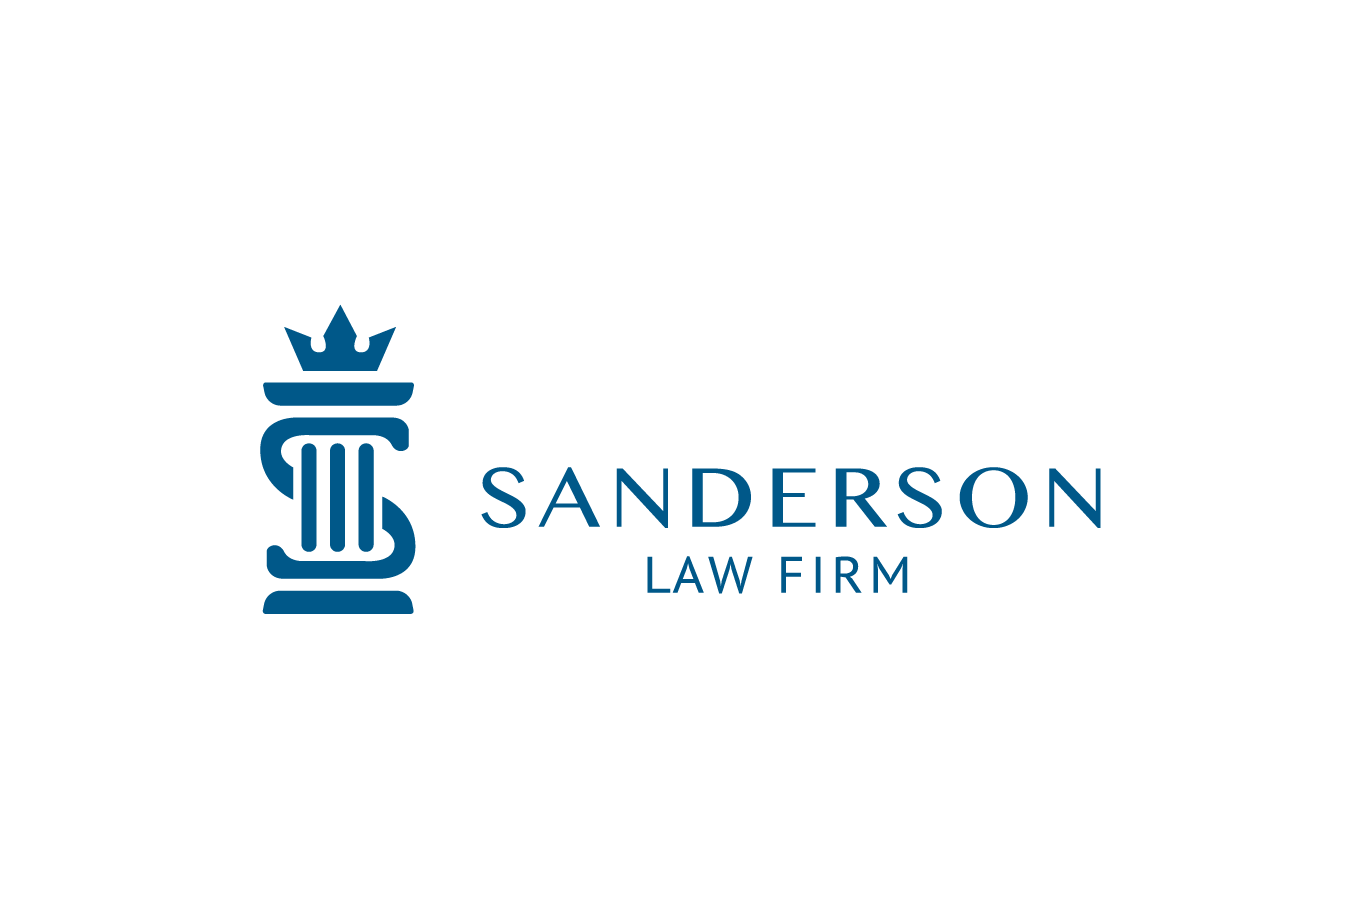 Sanderson law firm logo design letter s and letter r for Design firma